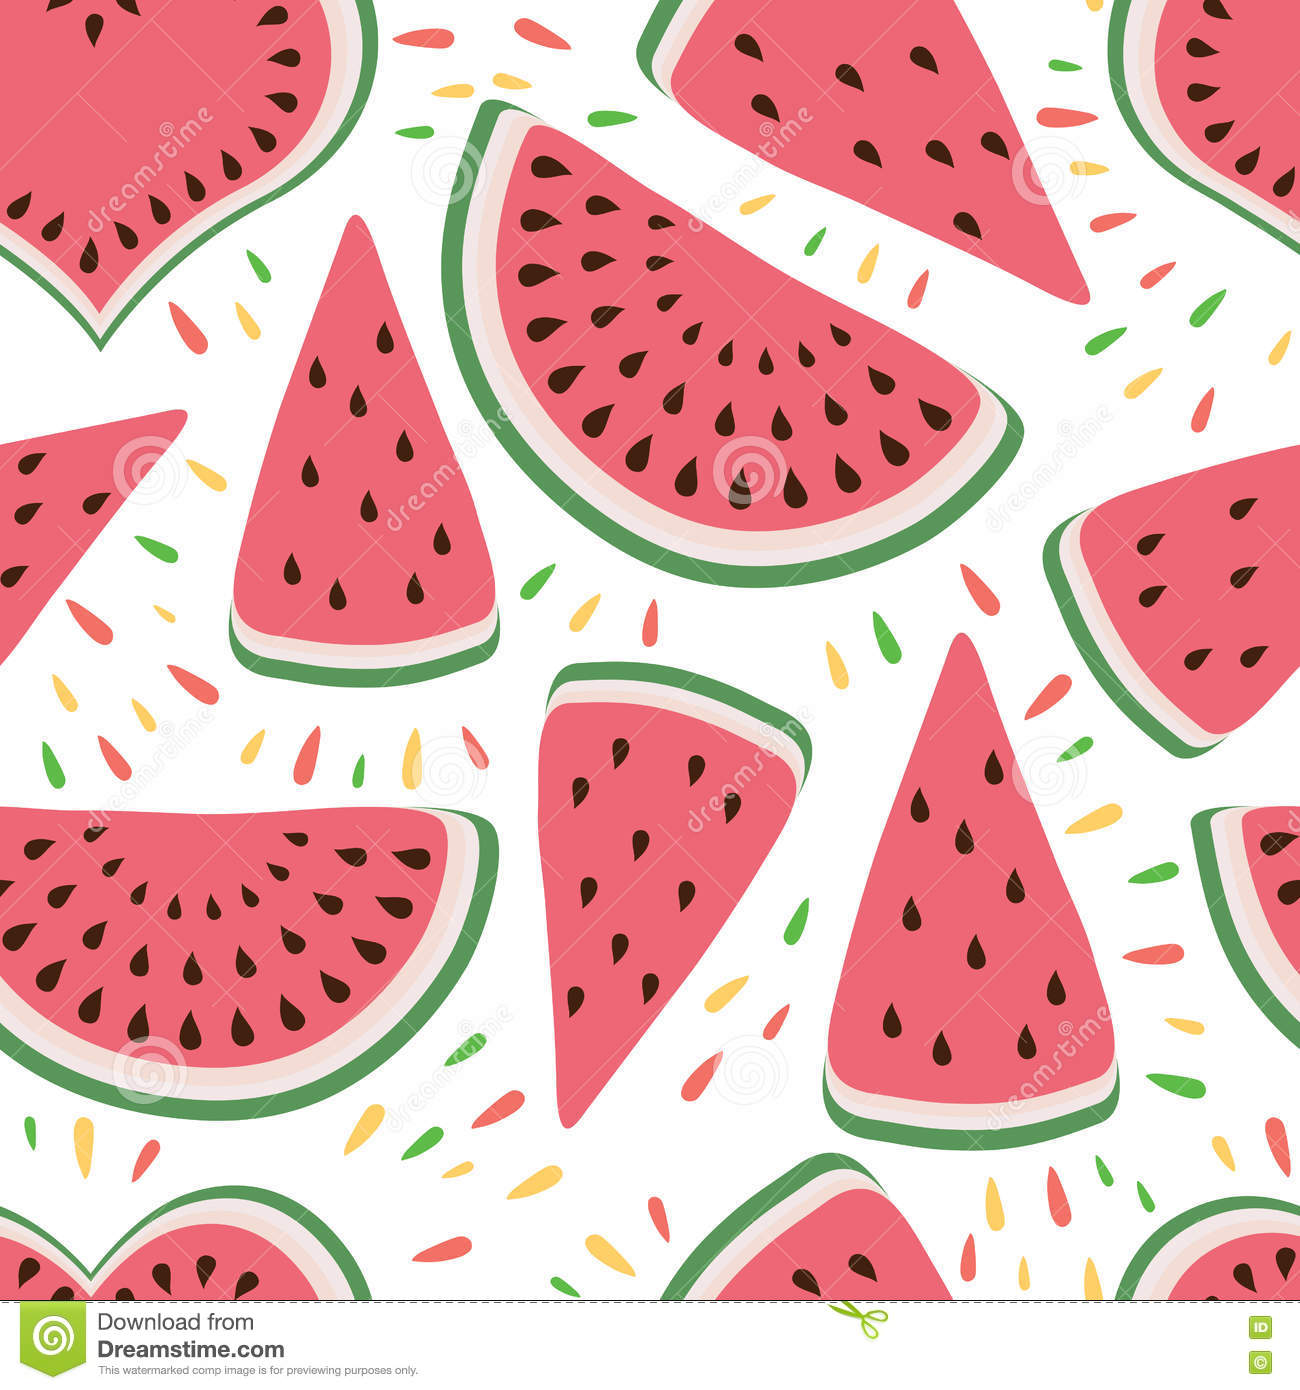 seamless background with cute watermelon slices on the white